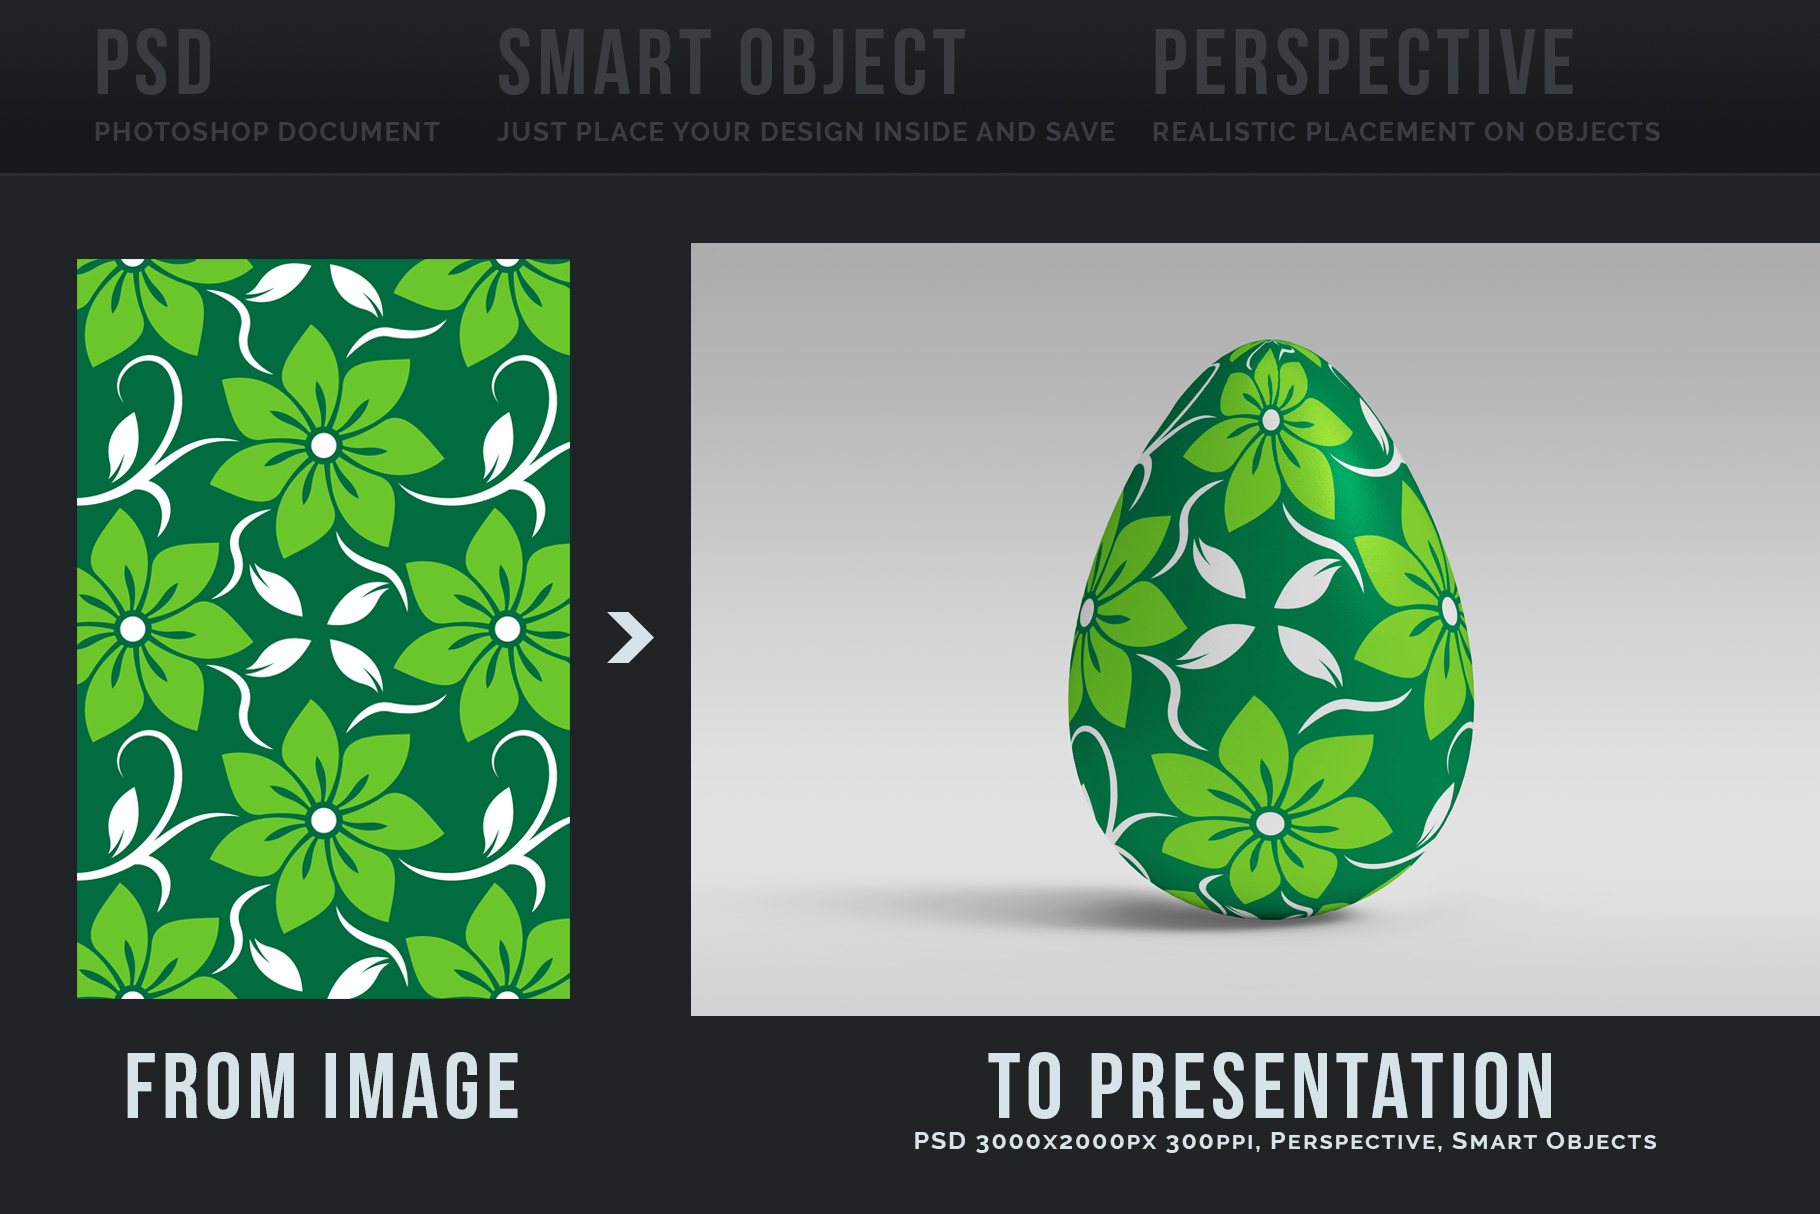 Easter Egg Mockups and Images example image 3